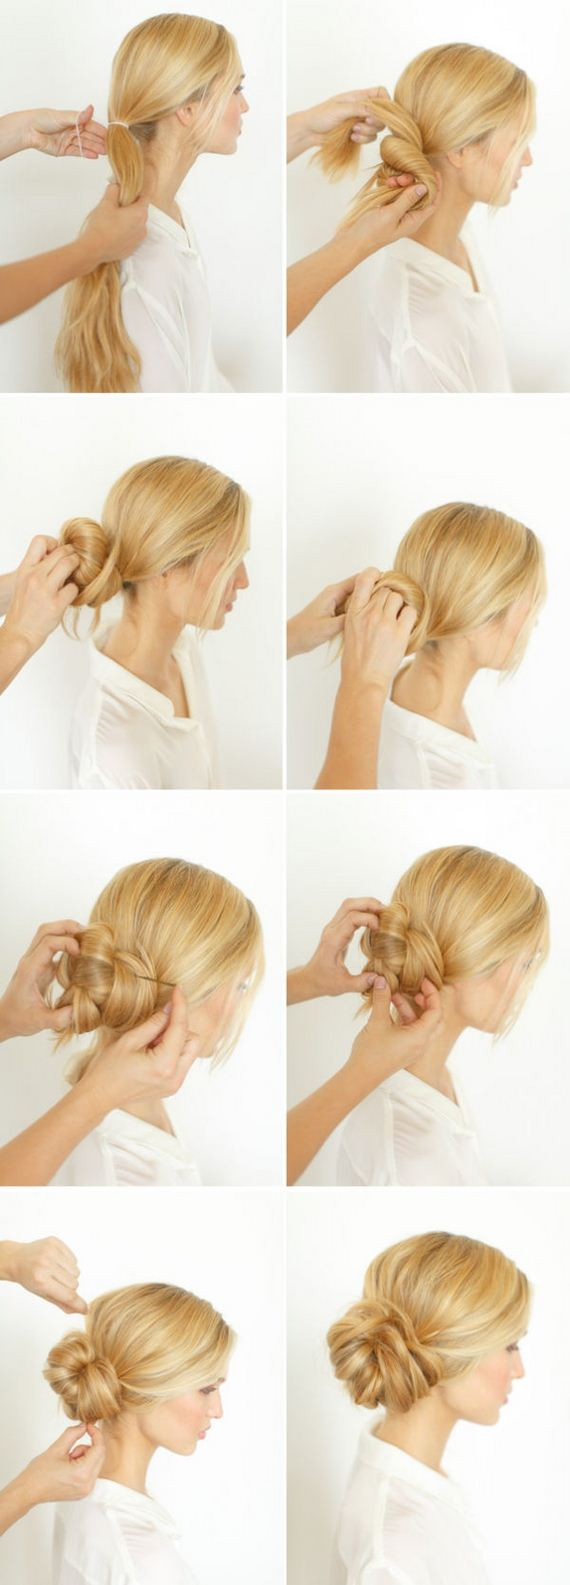 11-DIY-Side-Hairstyles